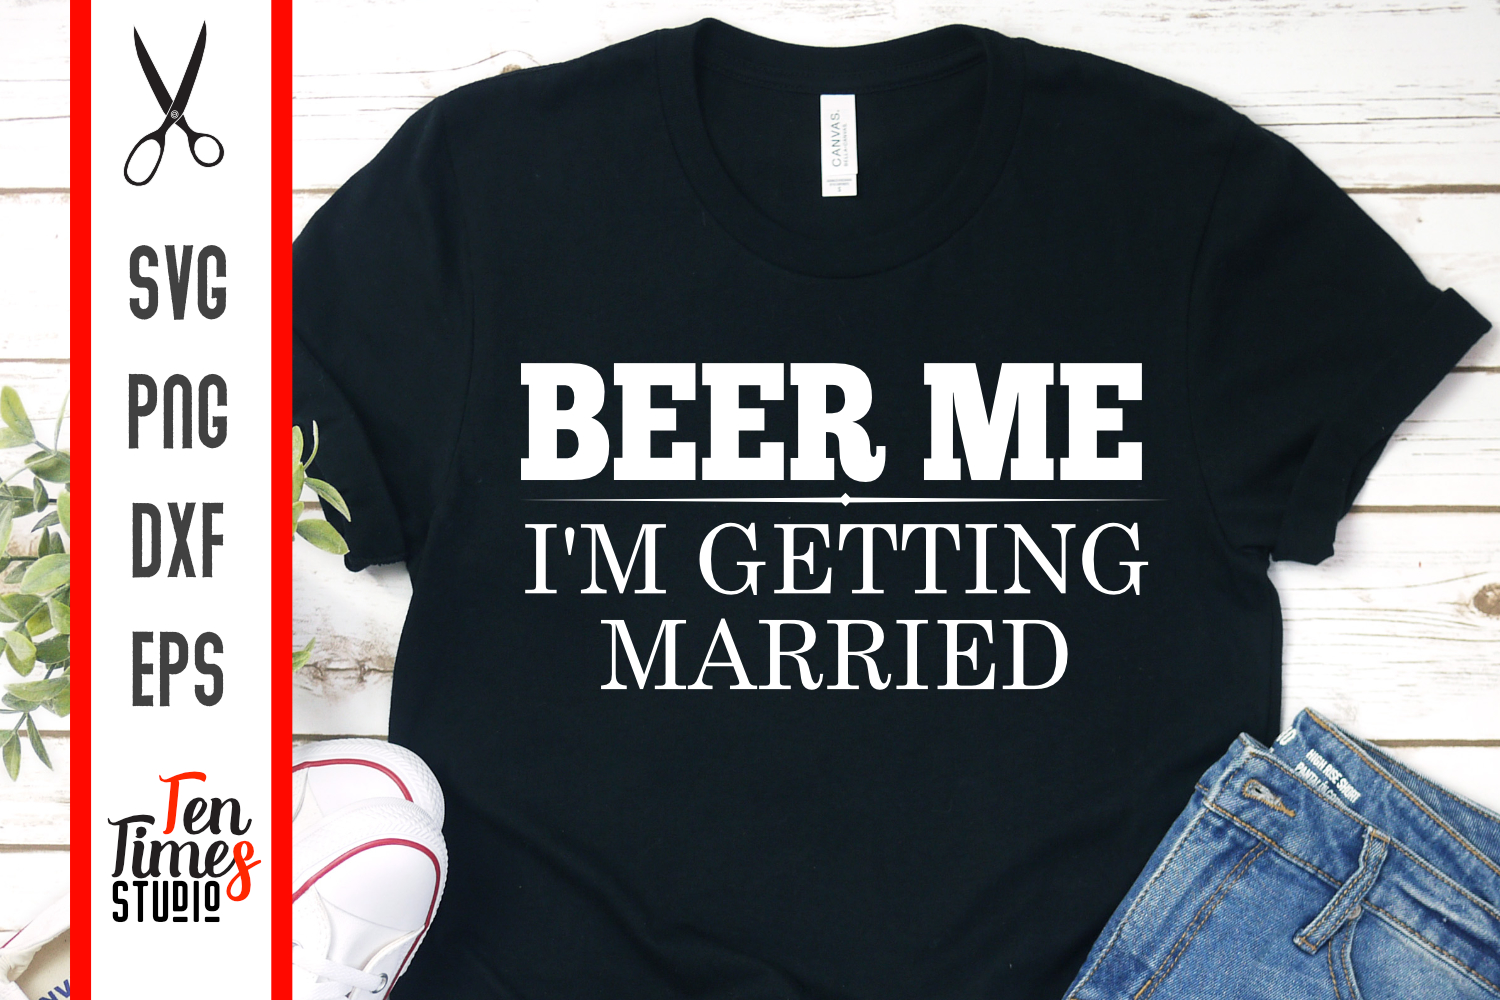 Download Free Wedding Groom Bride Beer Me Graphic By Ten Times Studio for Cricut Explore, Silhouette and other cutting machines.